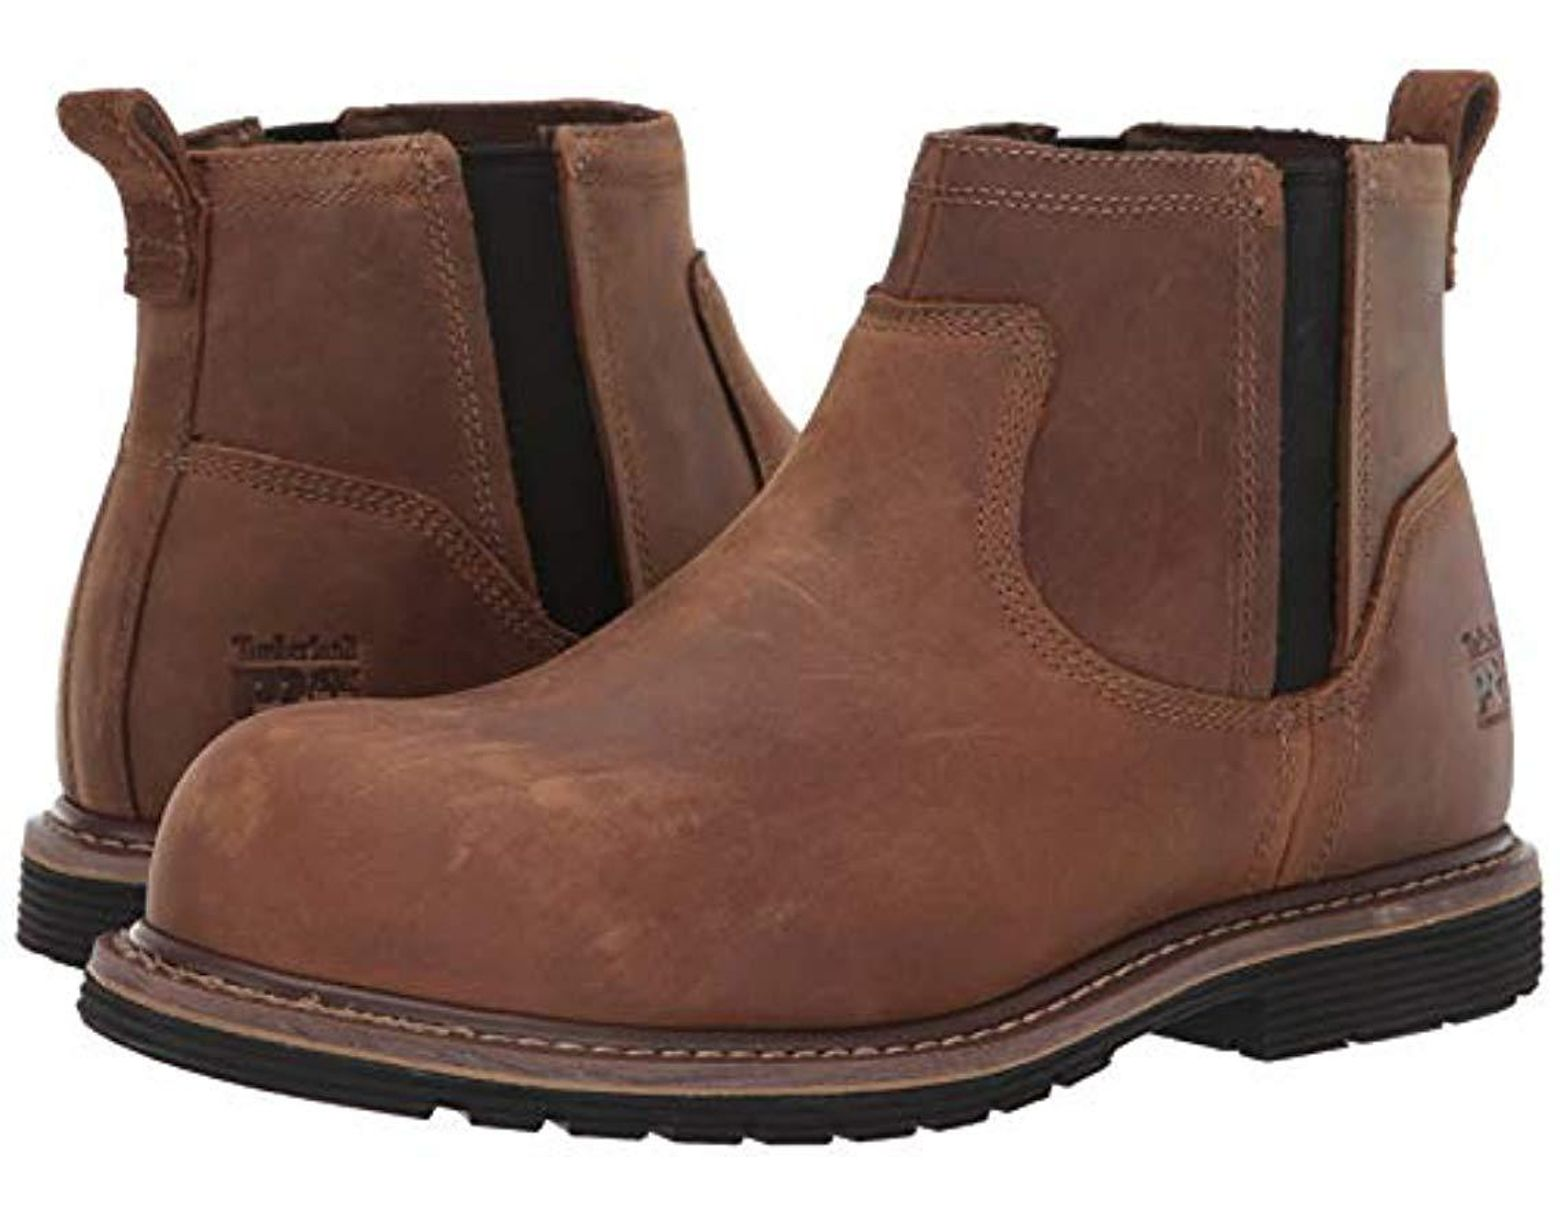 201f3d5dbeb Men's Brown Millworks Chelsea Composite Safety Toe